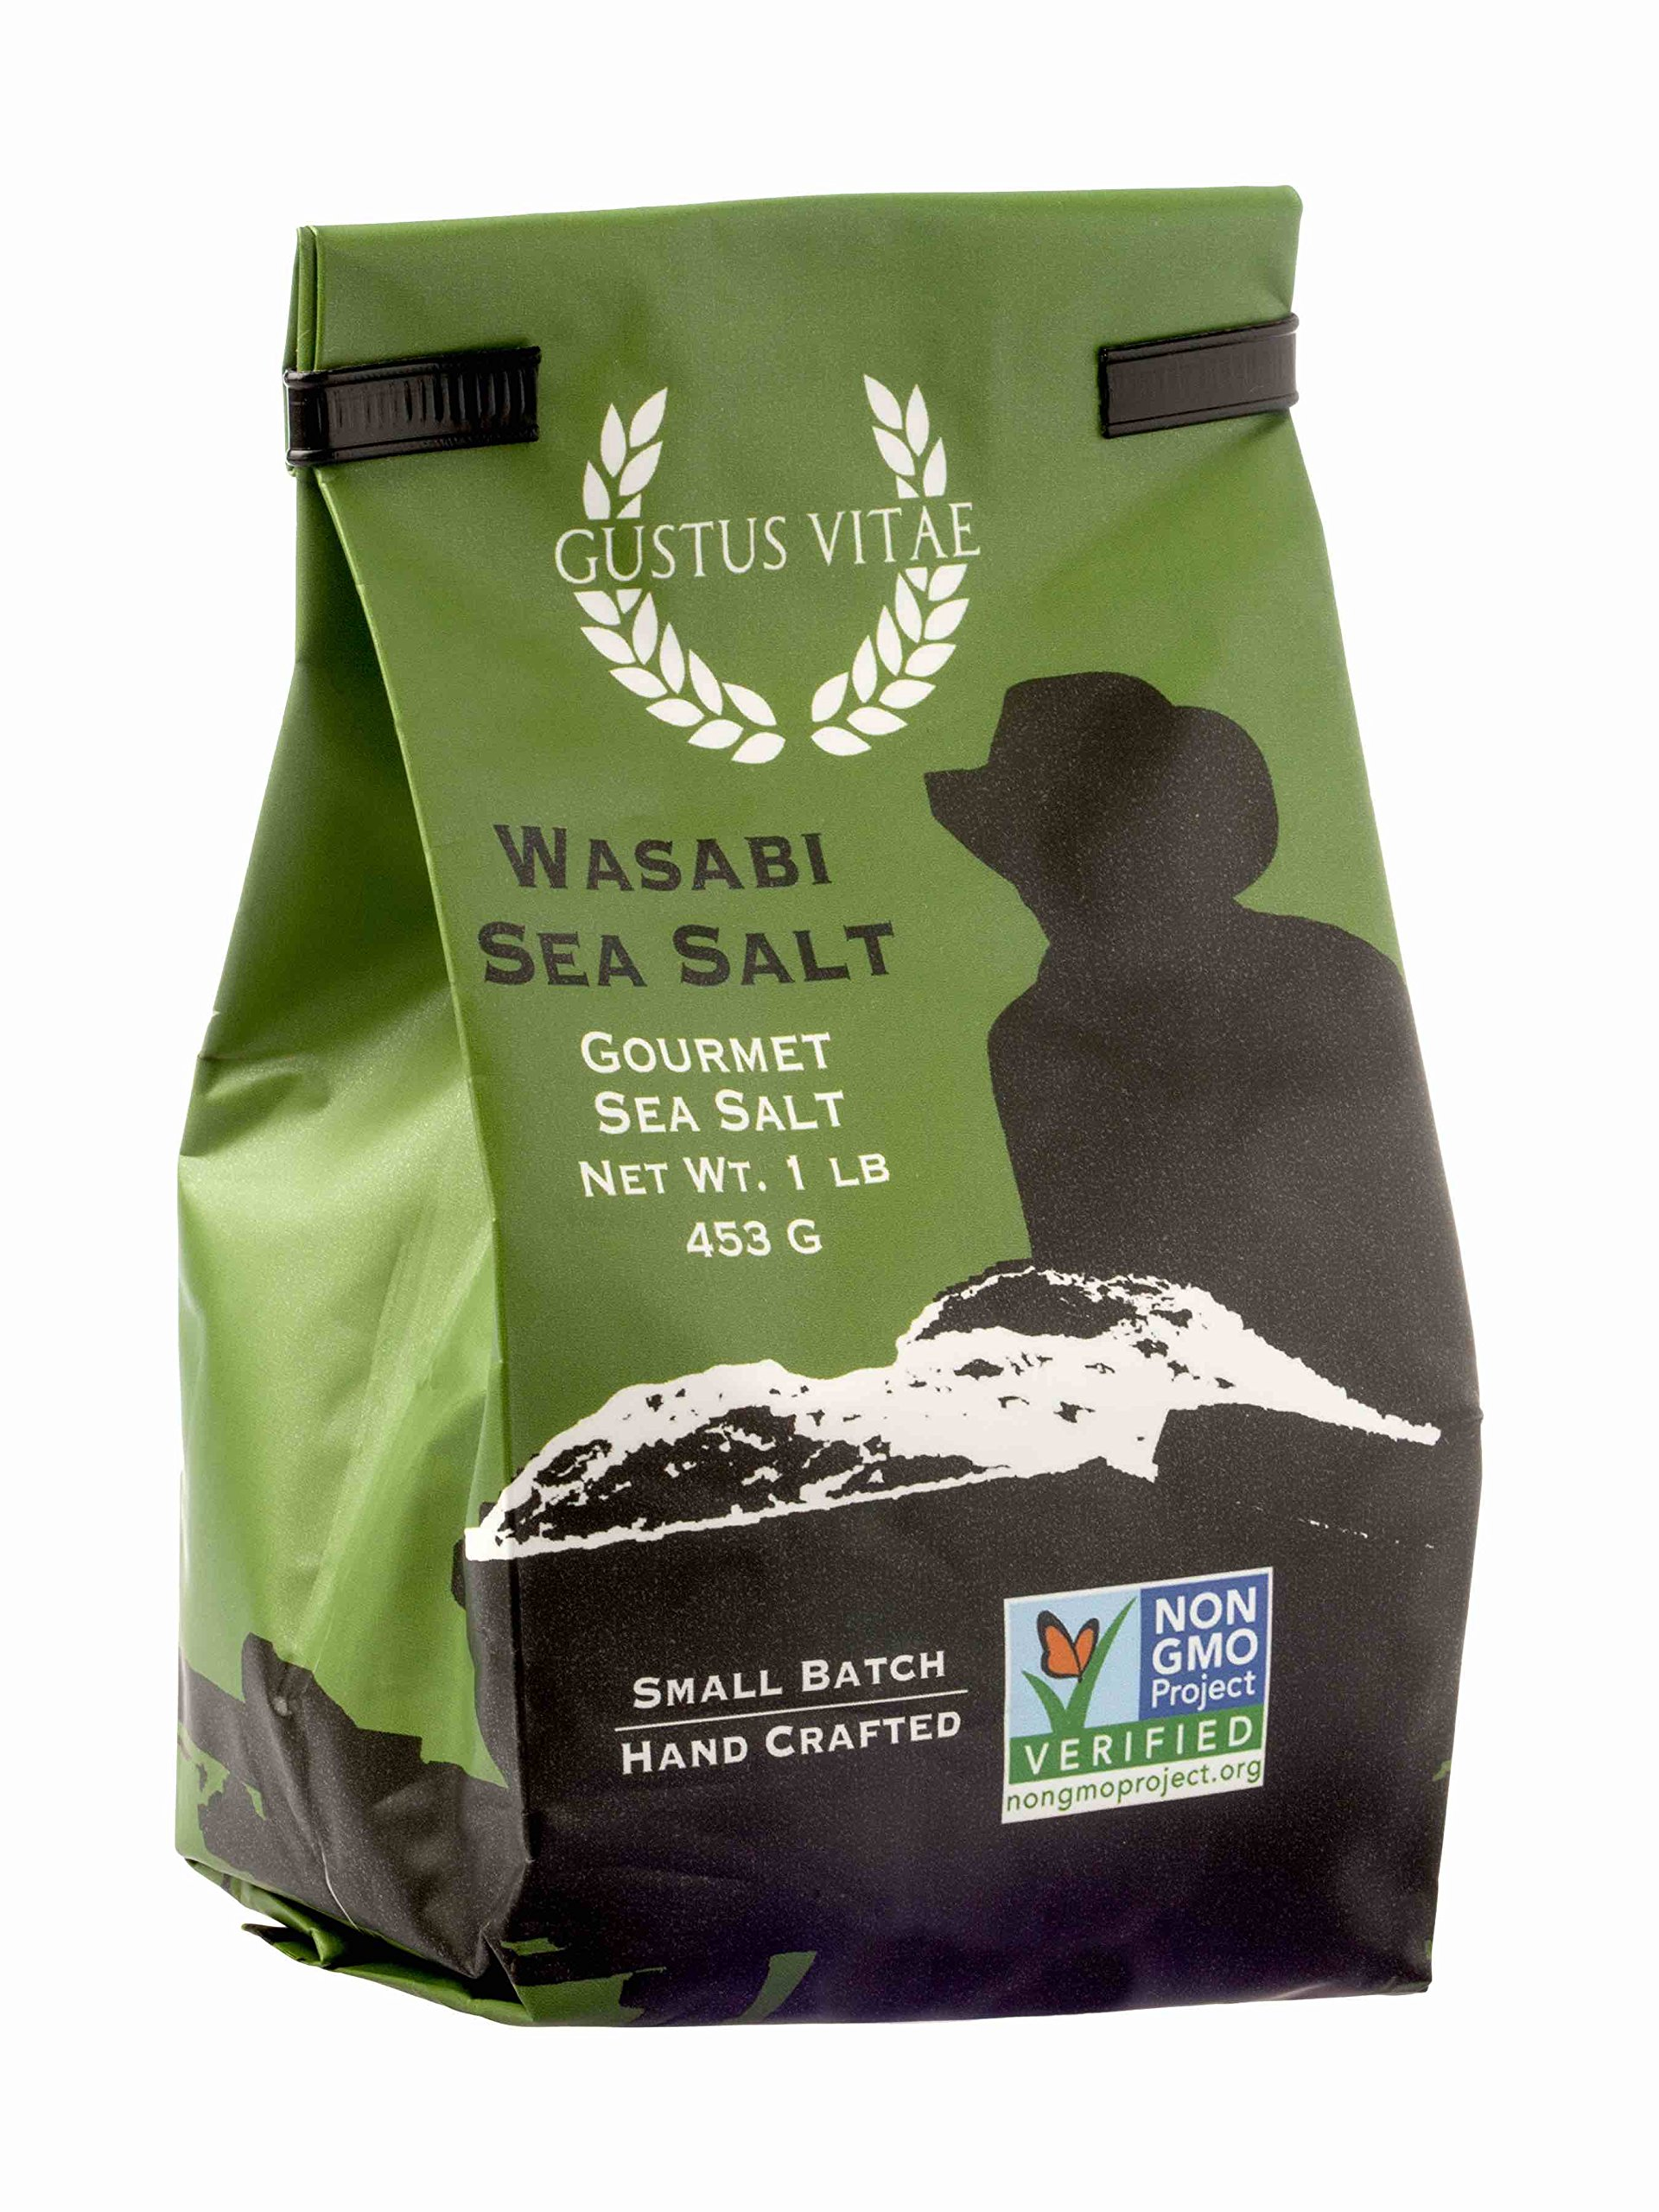 Wasabi Sea Salt | Non GMO Verified | All Natural | Bulk Seasoning | 1LB | Crafted in Small Batches by Gustus Vitae | #A4